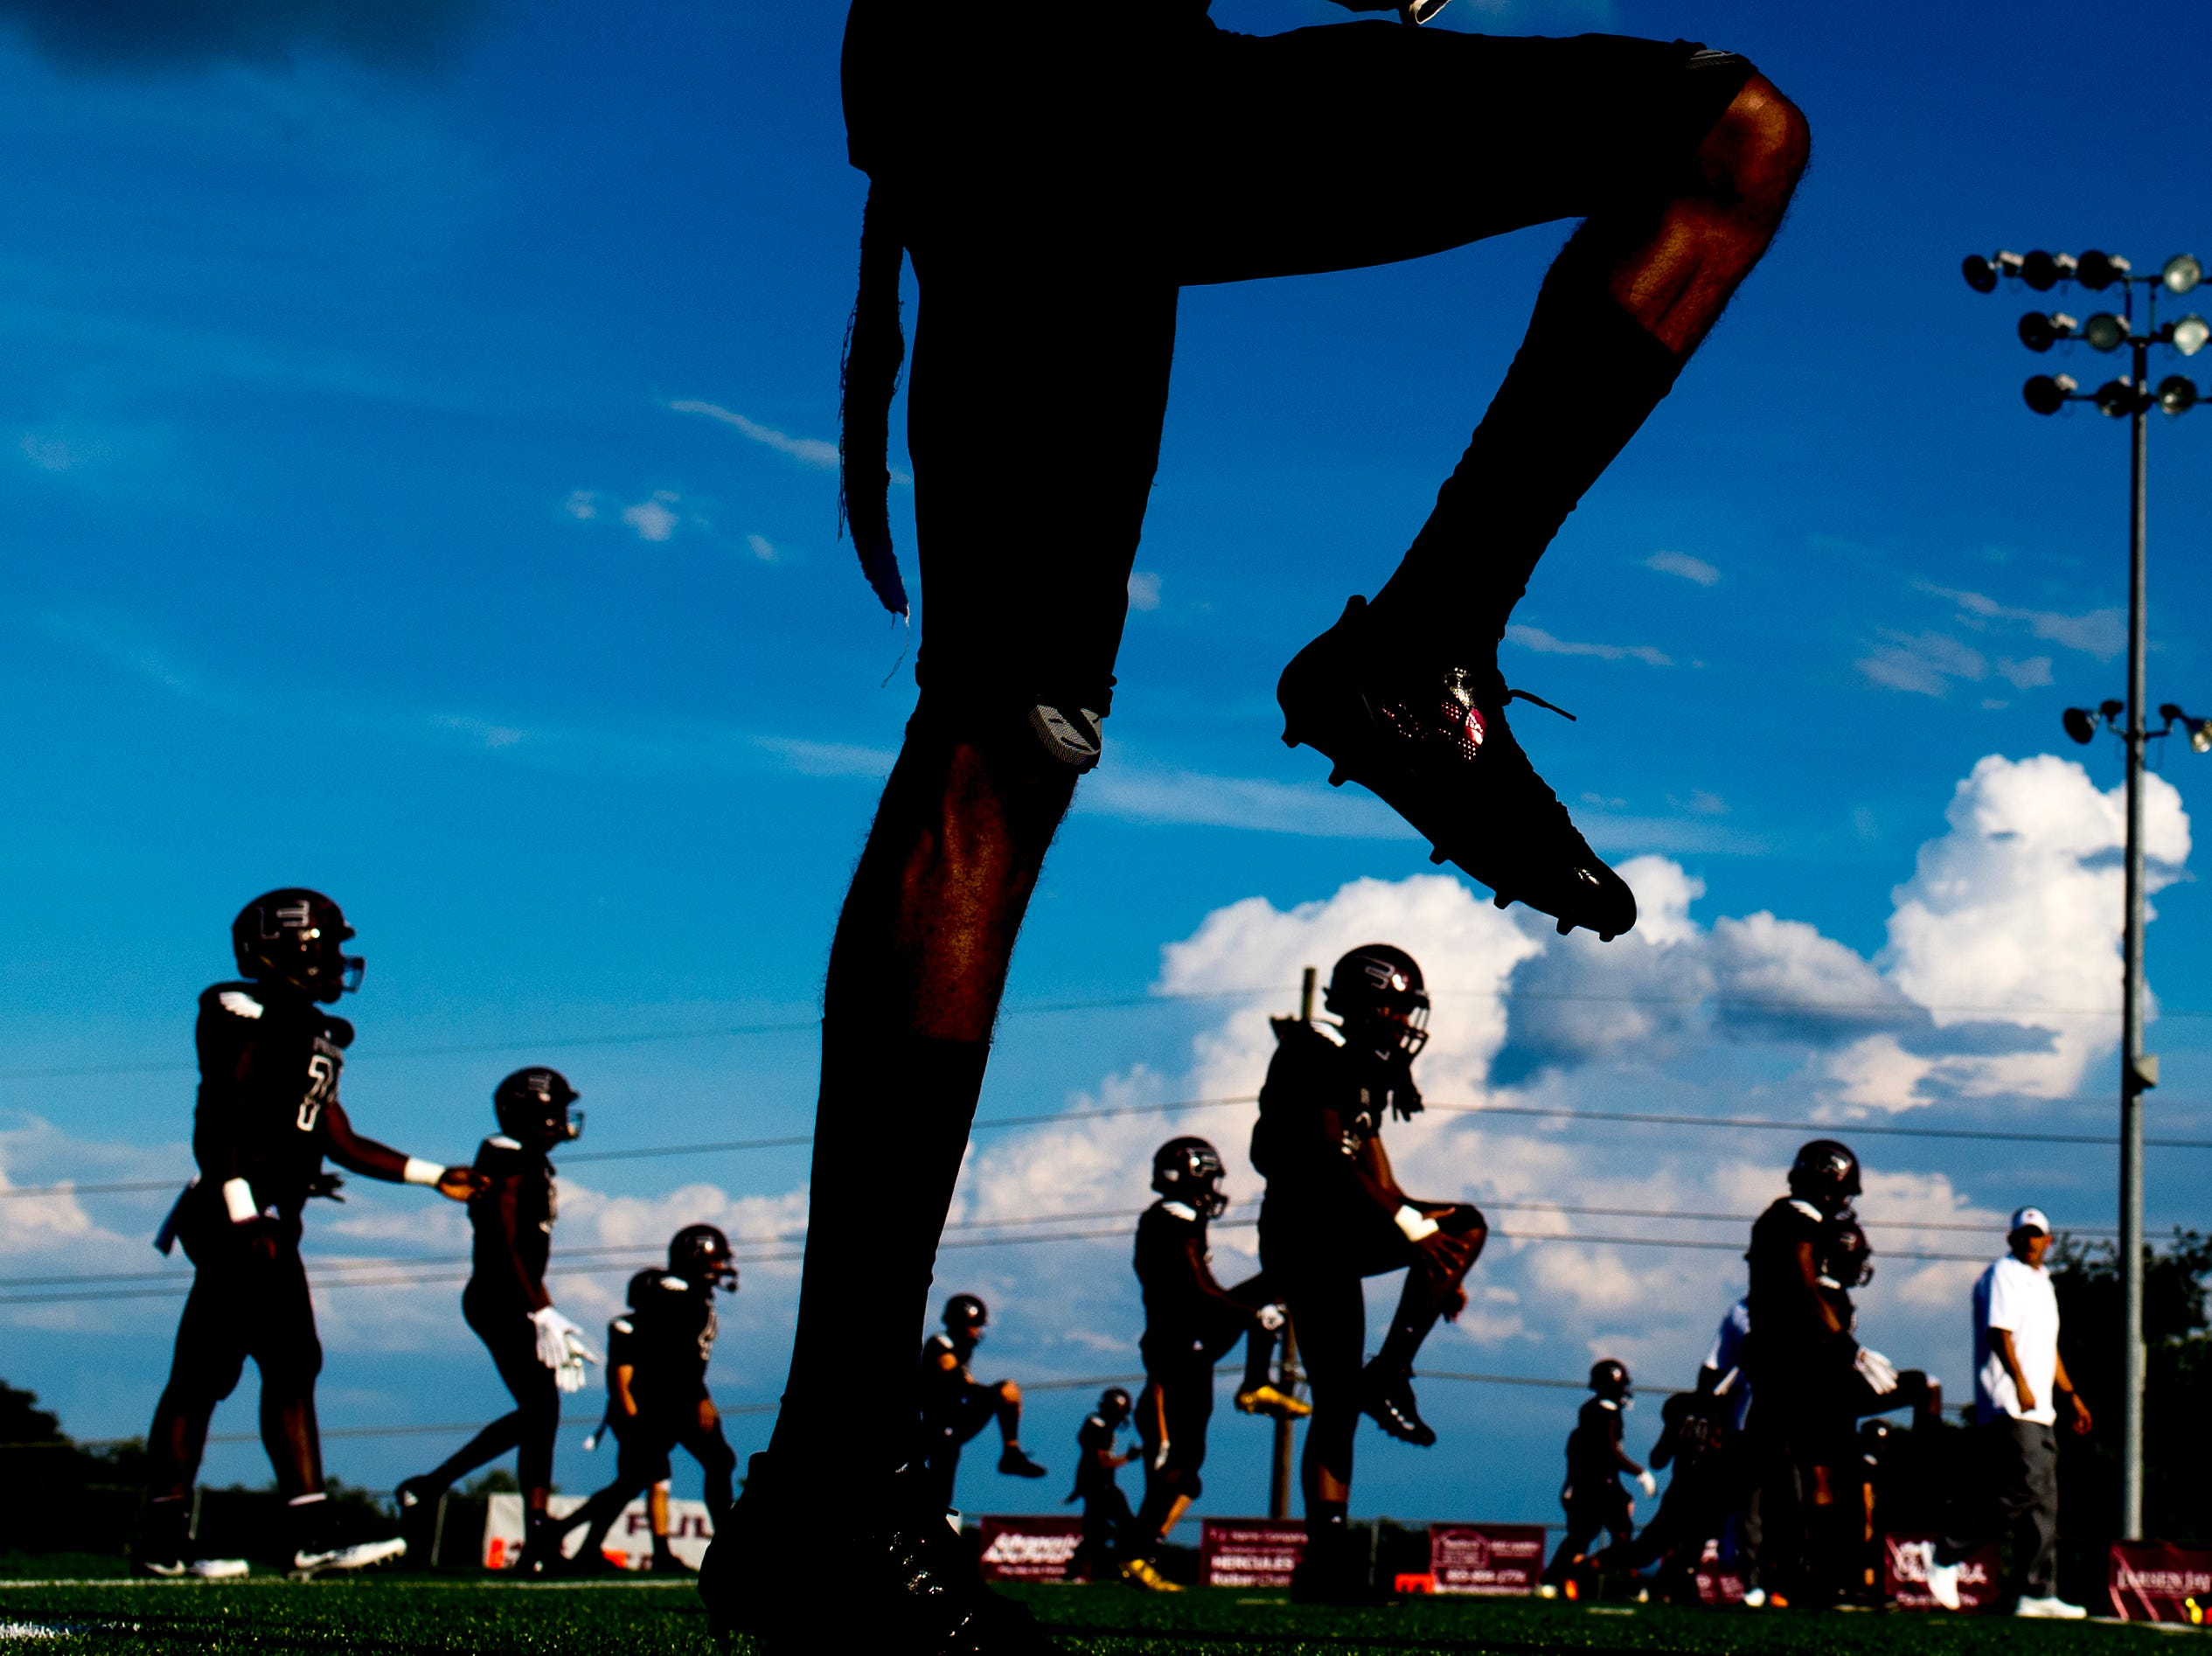 Fulton players warm up during a football game between Fulton and Austin-East at Fulton High School in Knoxville, Tennessee on Friday, September 7, 2018.